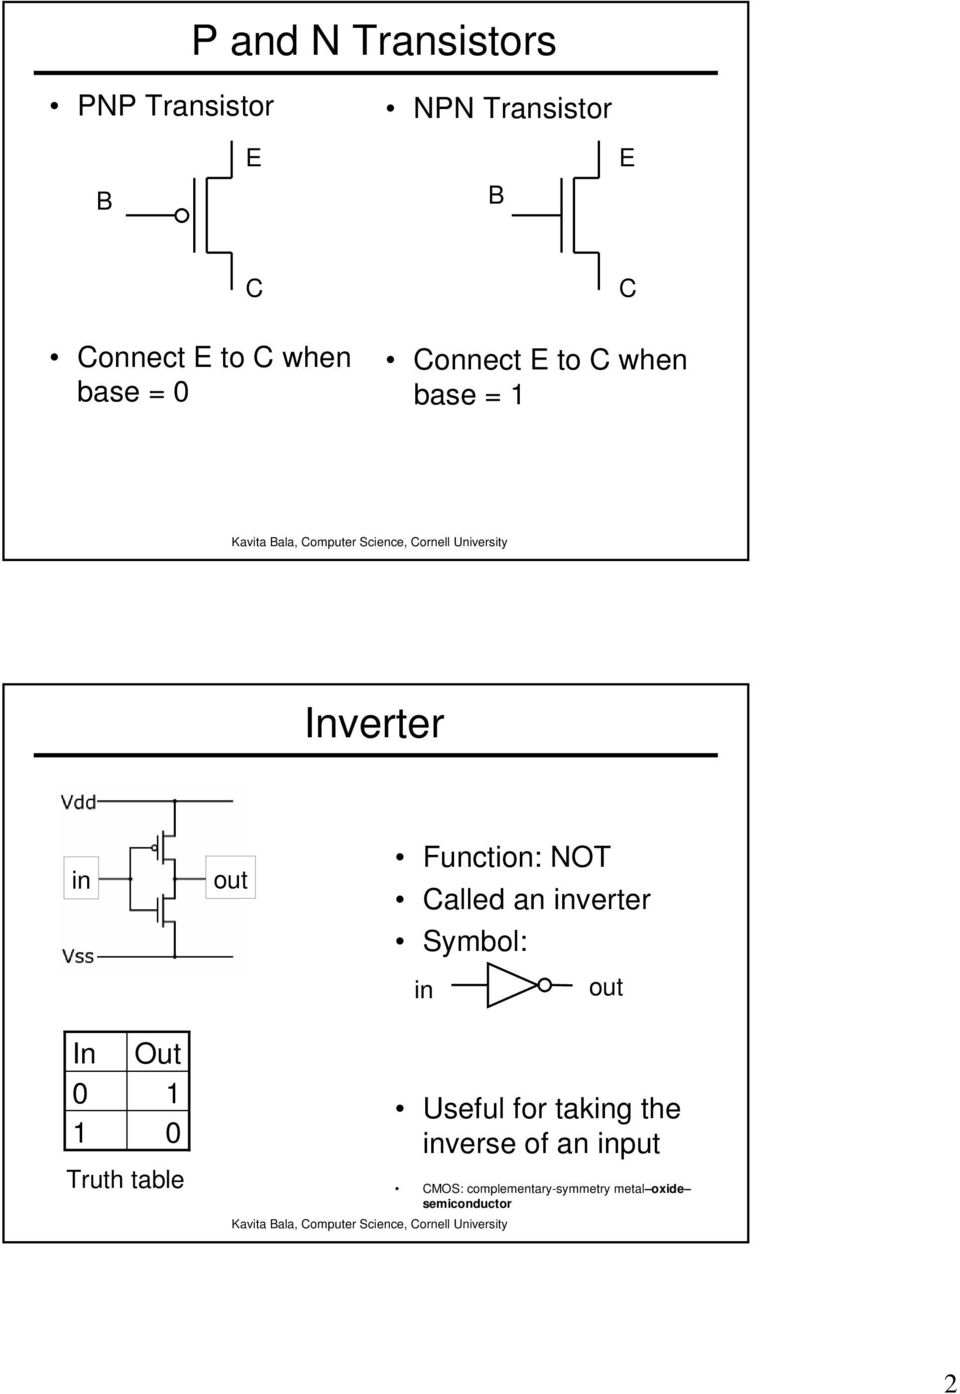 Clled n inverter Symol: in In Out Truth tle Useful for tking the